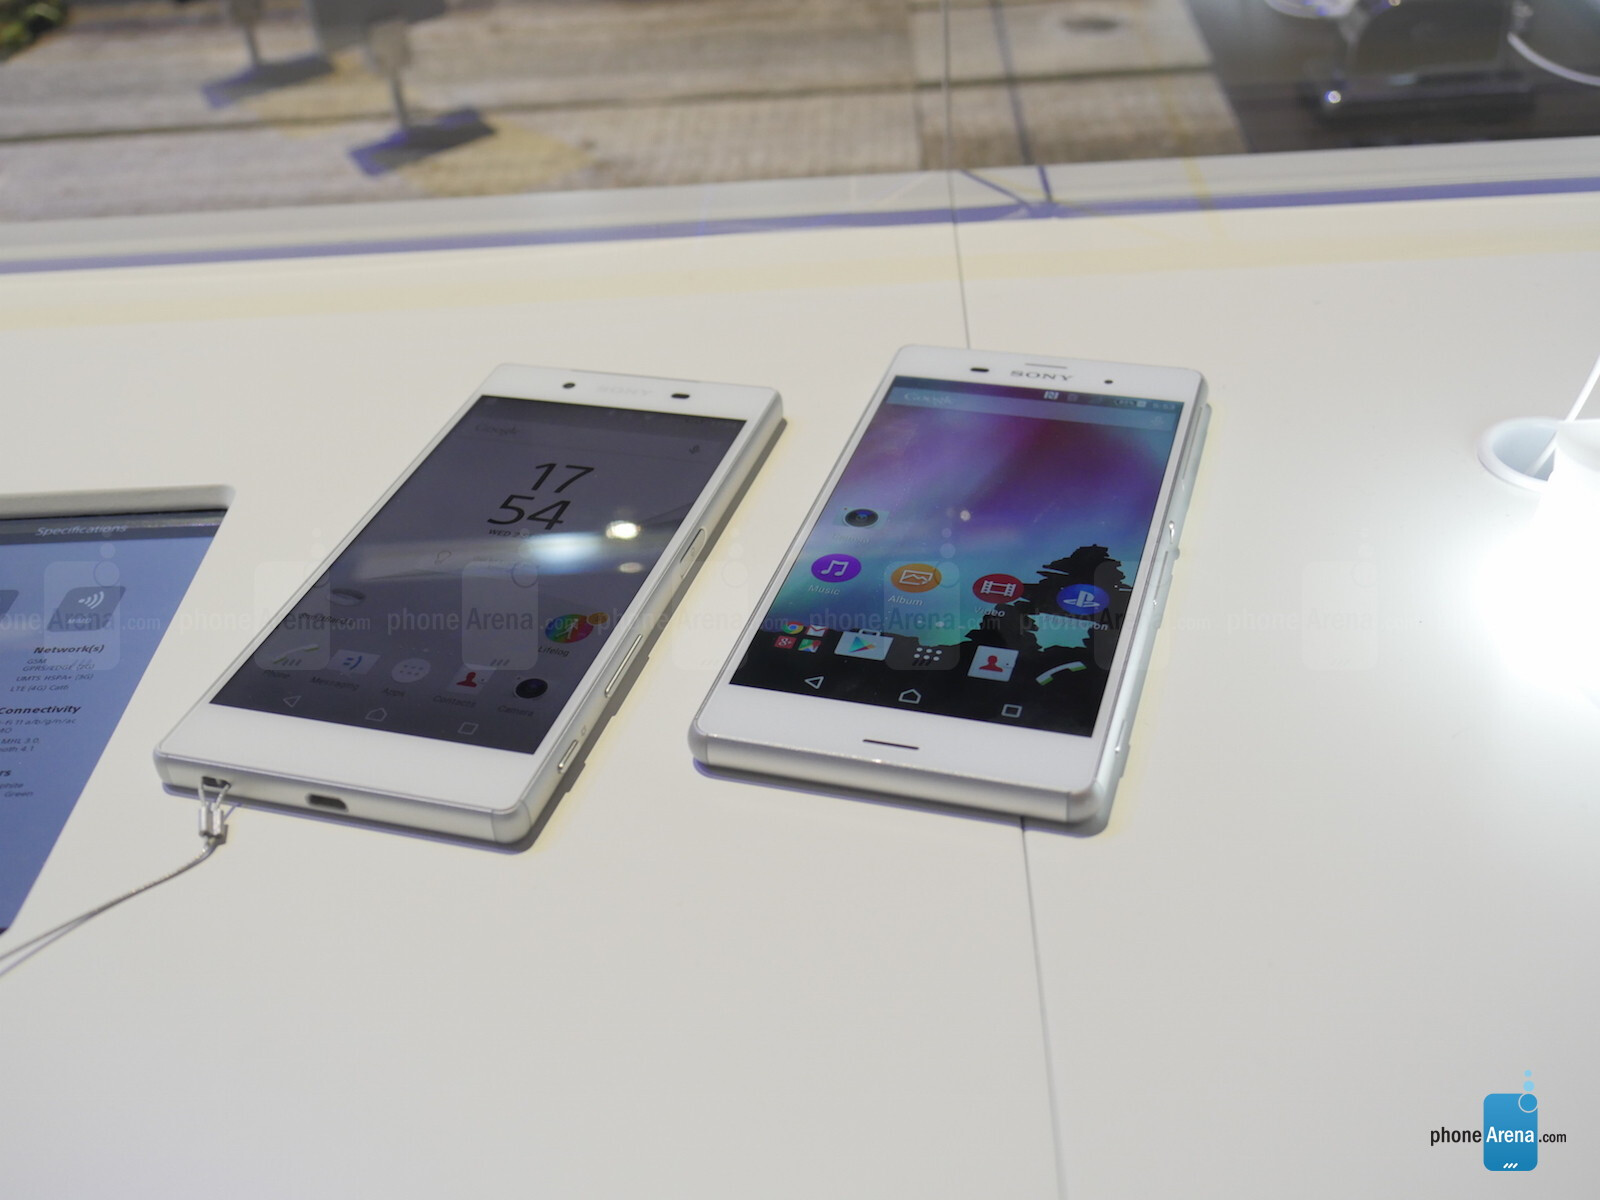 how to fix the time on xperia phone